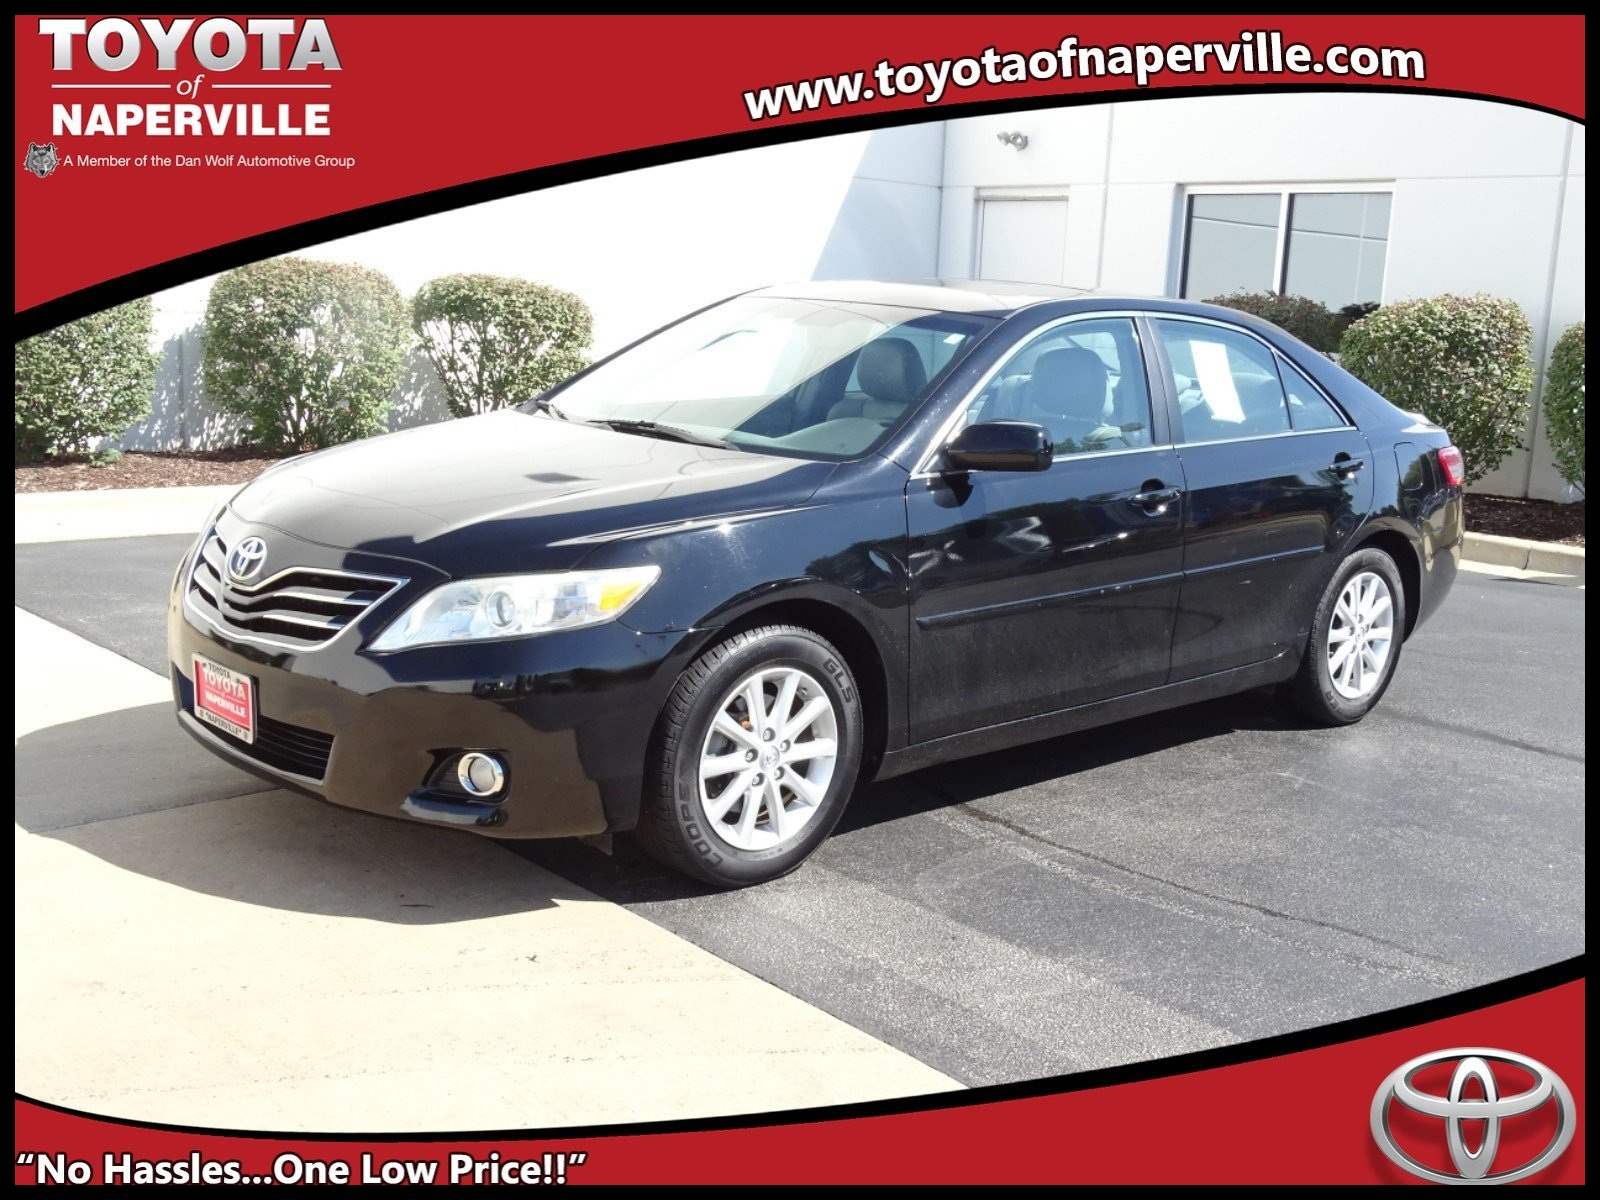 2018 toyota Camry Mpg Picture Pre Owned 2010 toyota Camry Xle 4d Sedan In Naperville Review